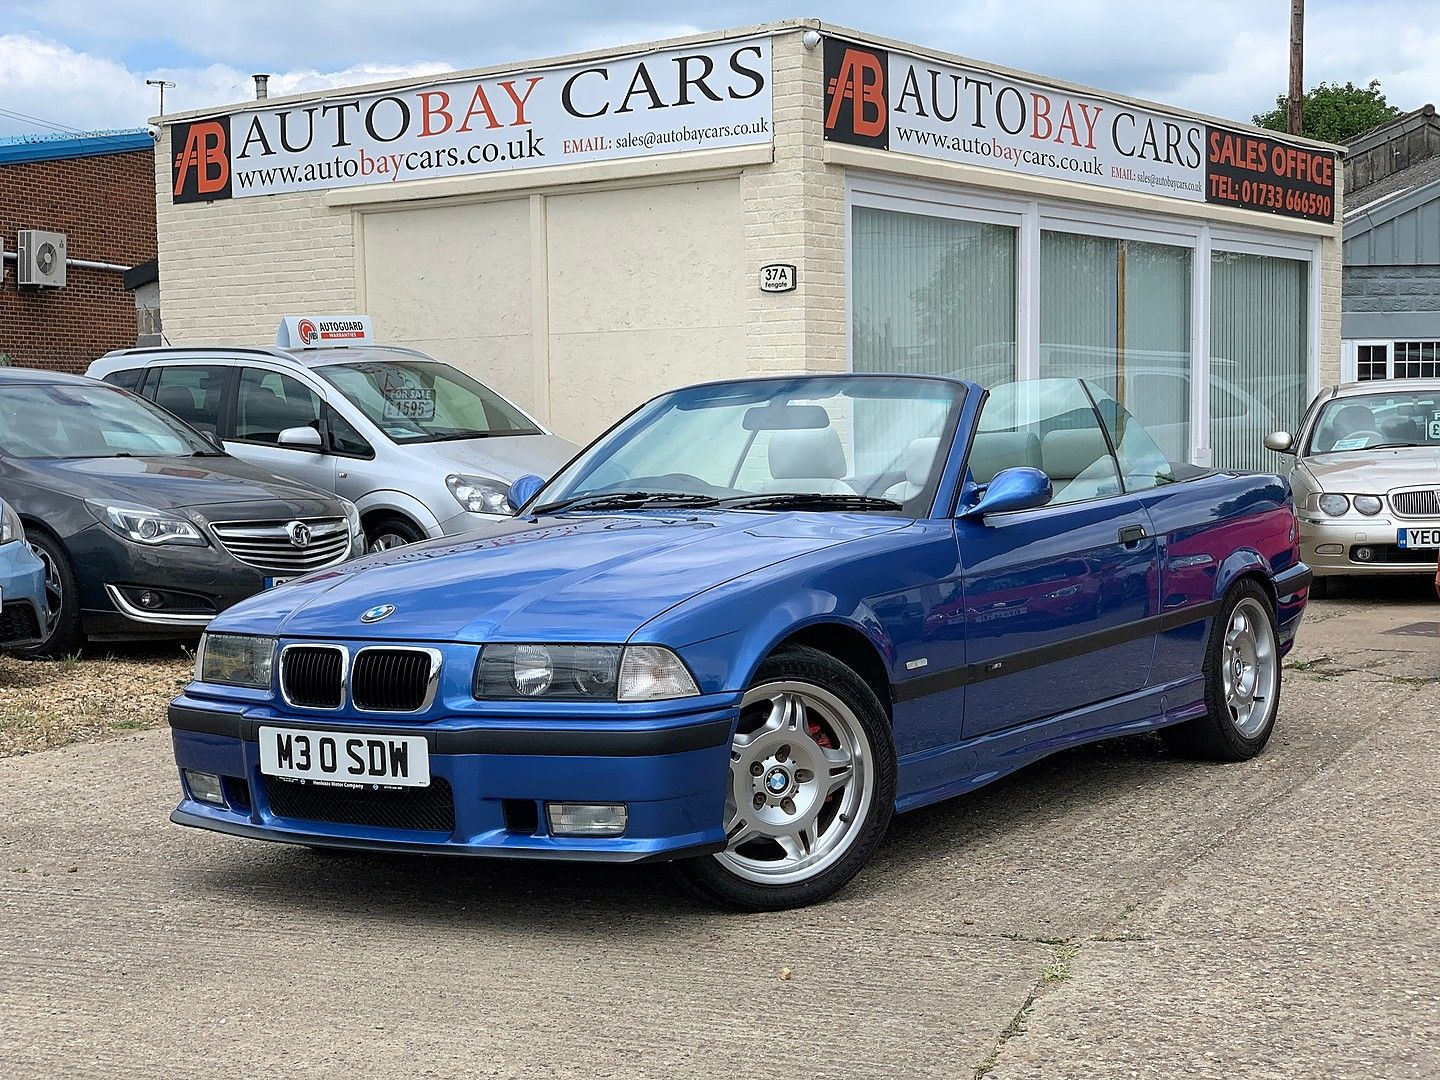 BMWEvolution EvoM3 E36 Cabriolet for sale